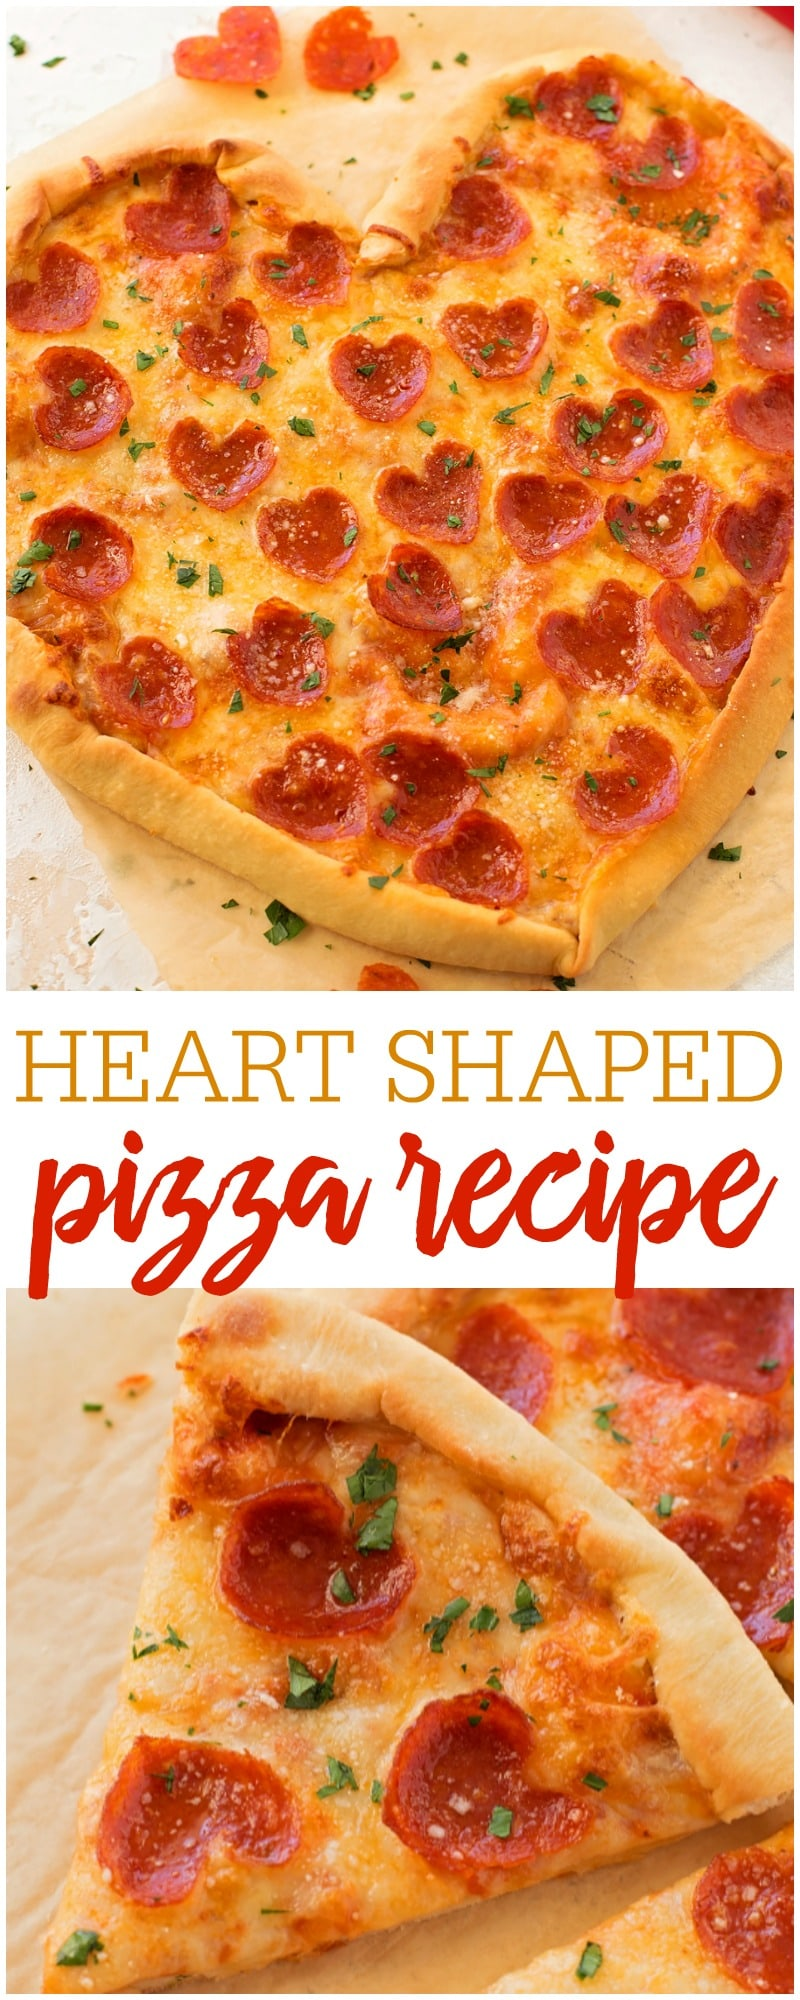 Heart Shaped Pizza - a delicious homemade pizza in the shape of a heart! It's perfect for Valentine's Day or special occasions.